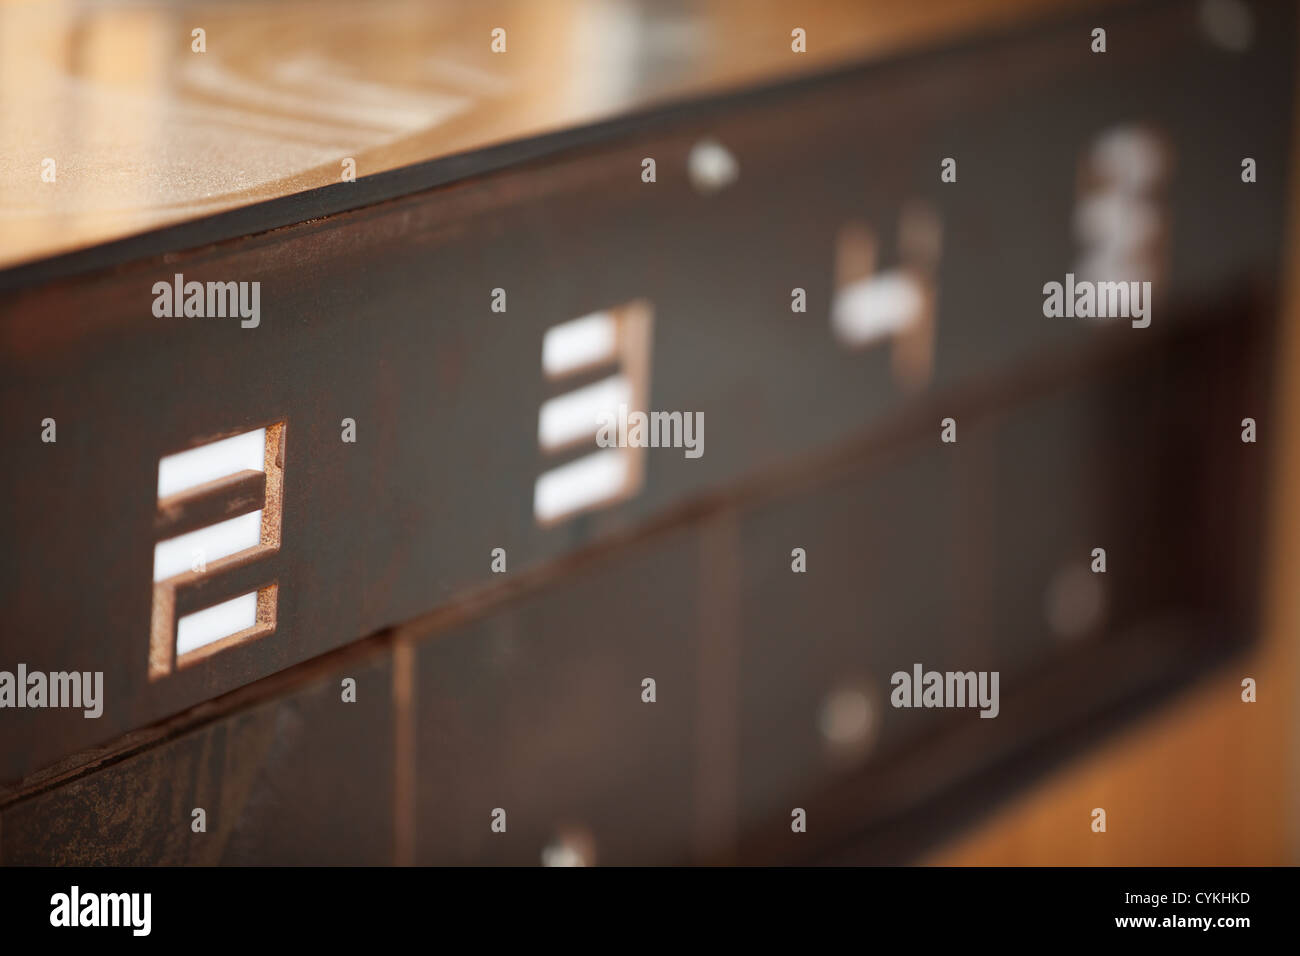 metal letter postbox in modern design apartment block numbers 2 - 5 - Stock Image